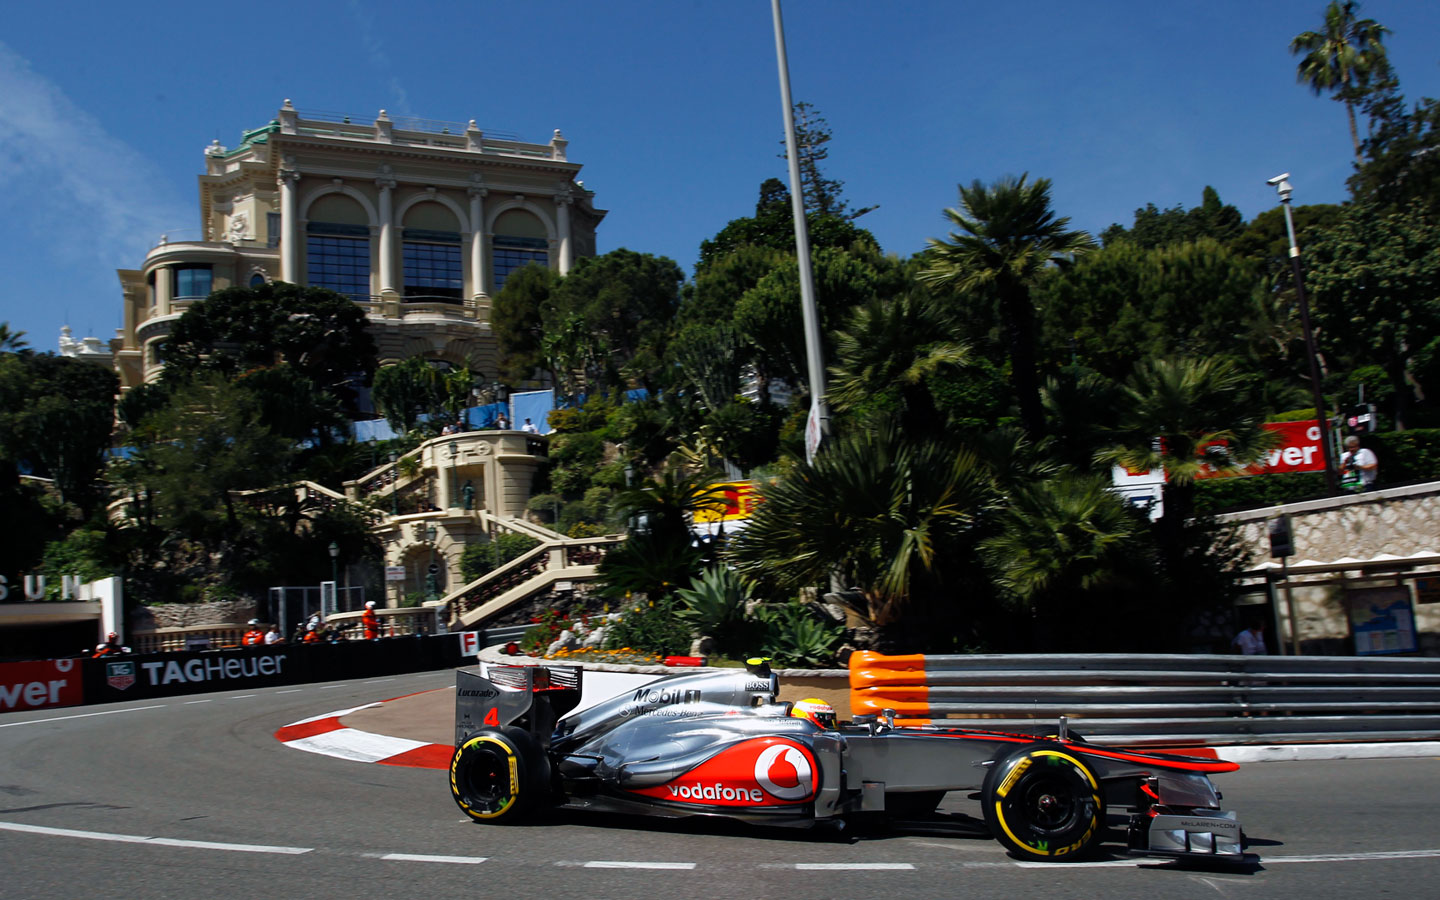 monaco grand prix packages 2018